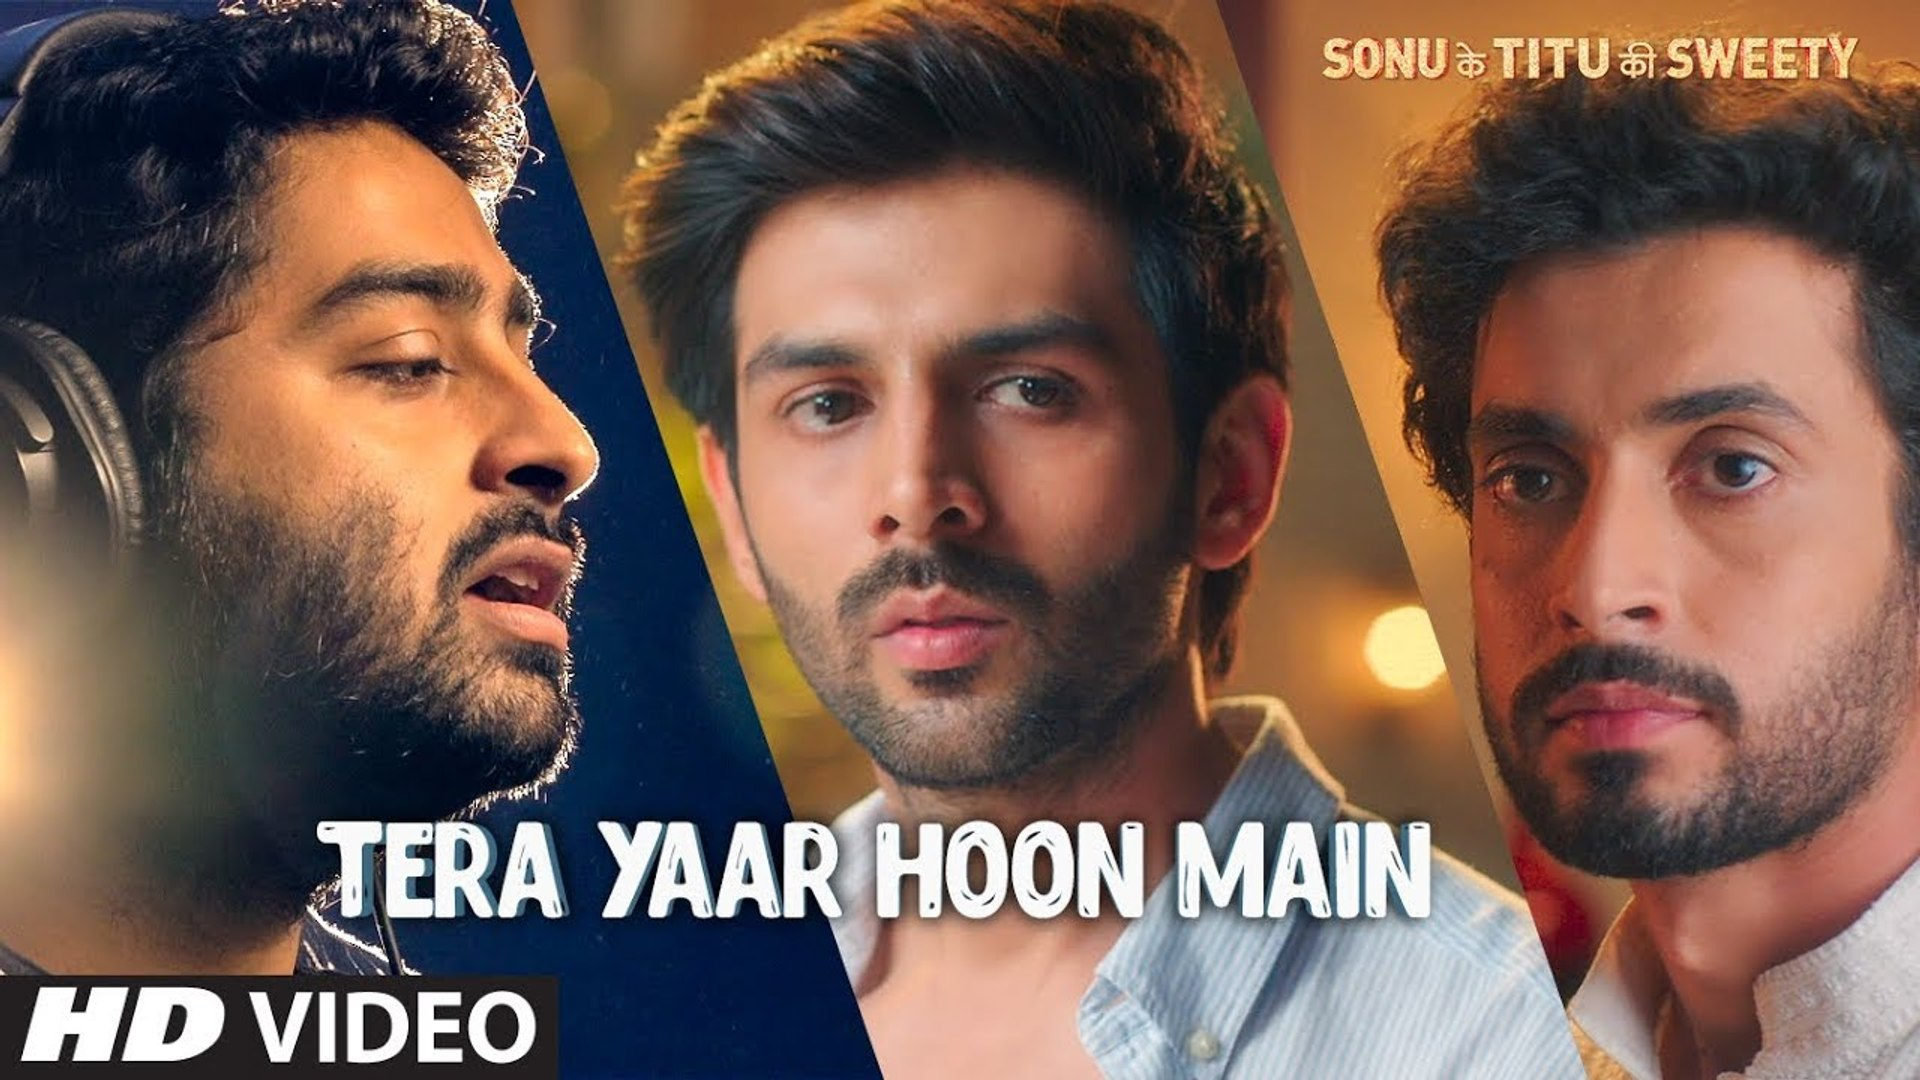 Tera Yaar Hoon Main Video | Sonu Ke Titu Ki Sweety | Arijit Singh | TOMORROW ►Movie in Cinemas